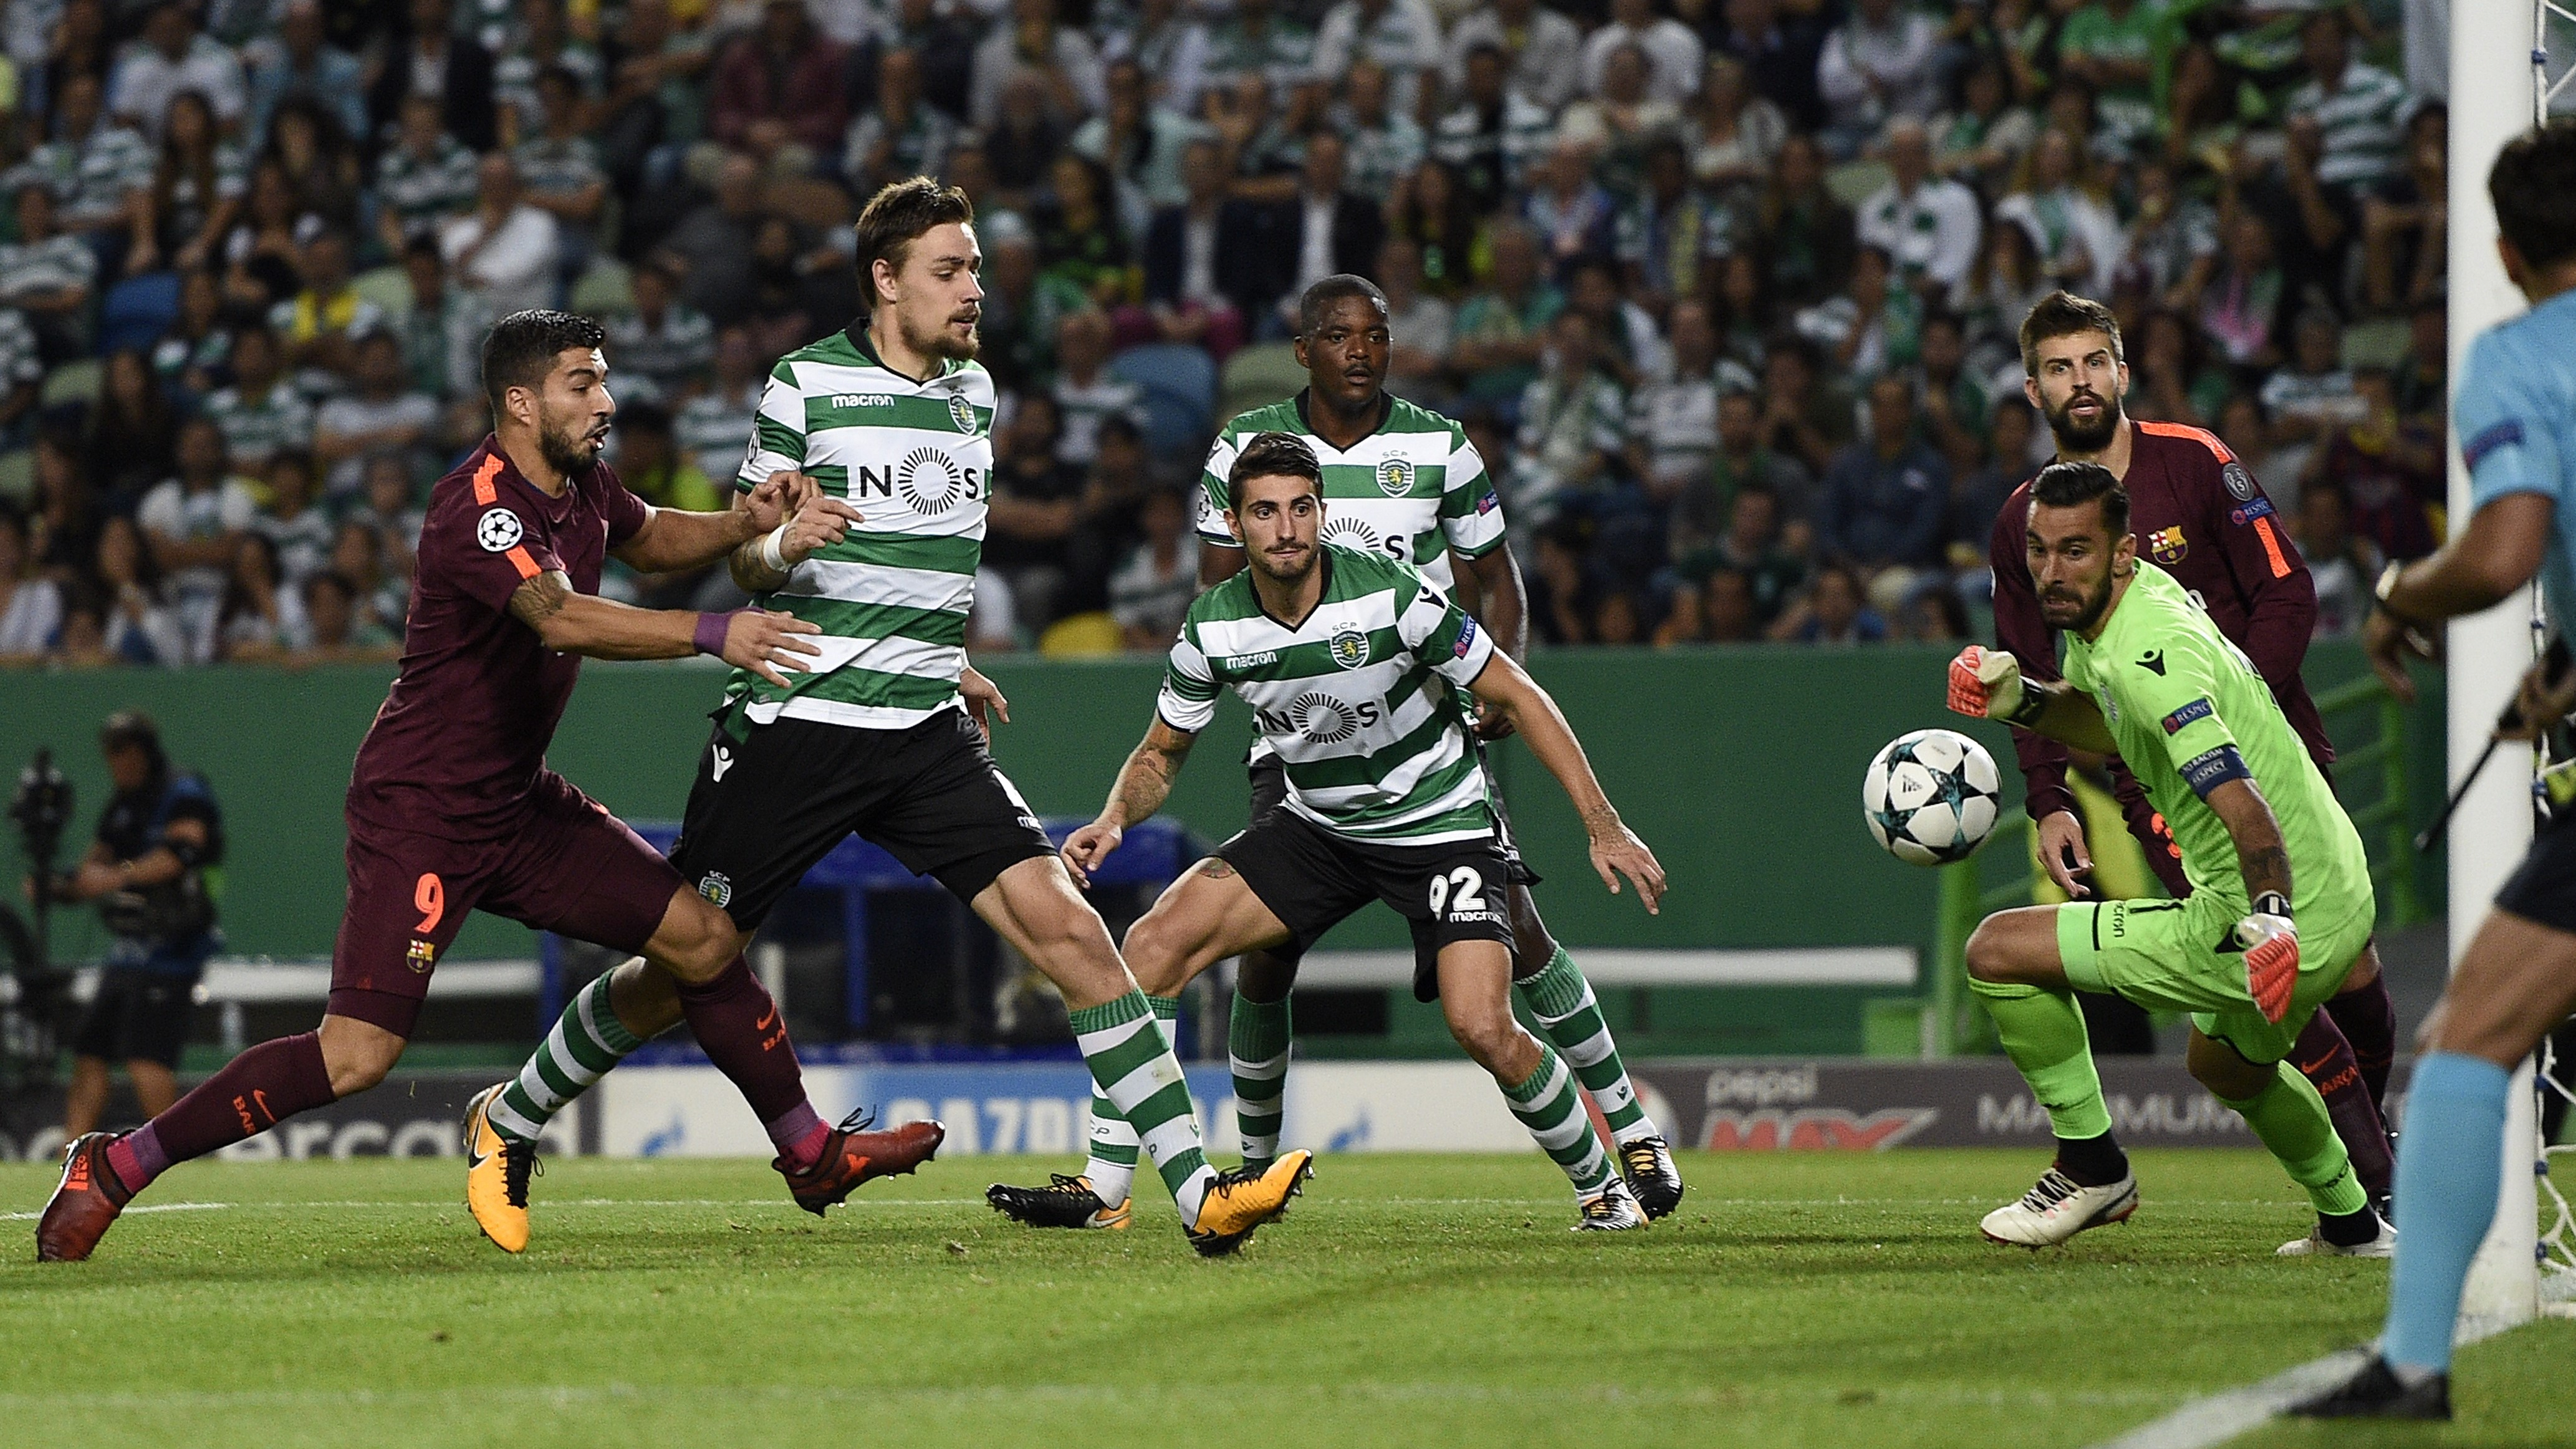 Sporting Barcellona (0-1): highlights ei gol della partita (Champions League girone D)